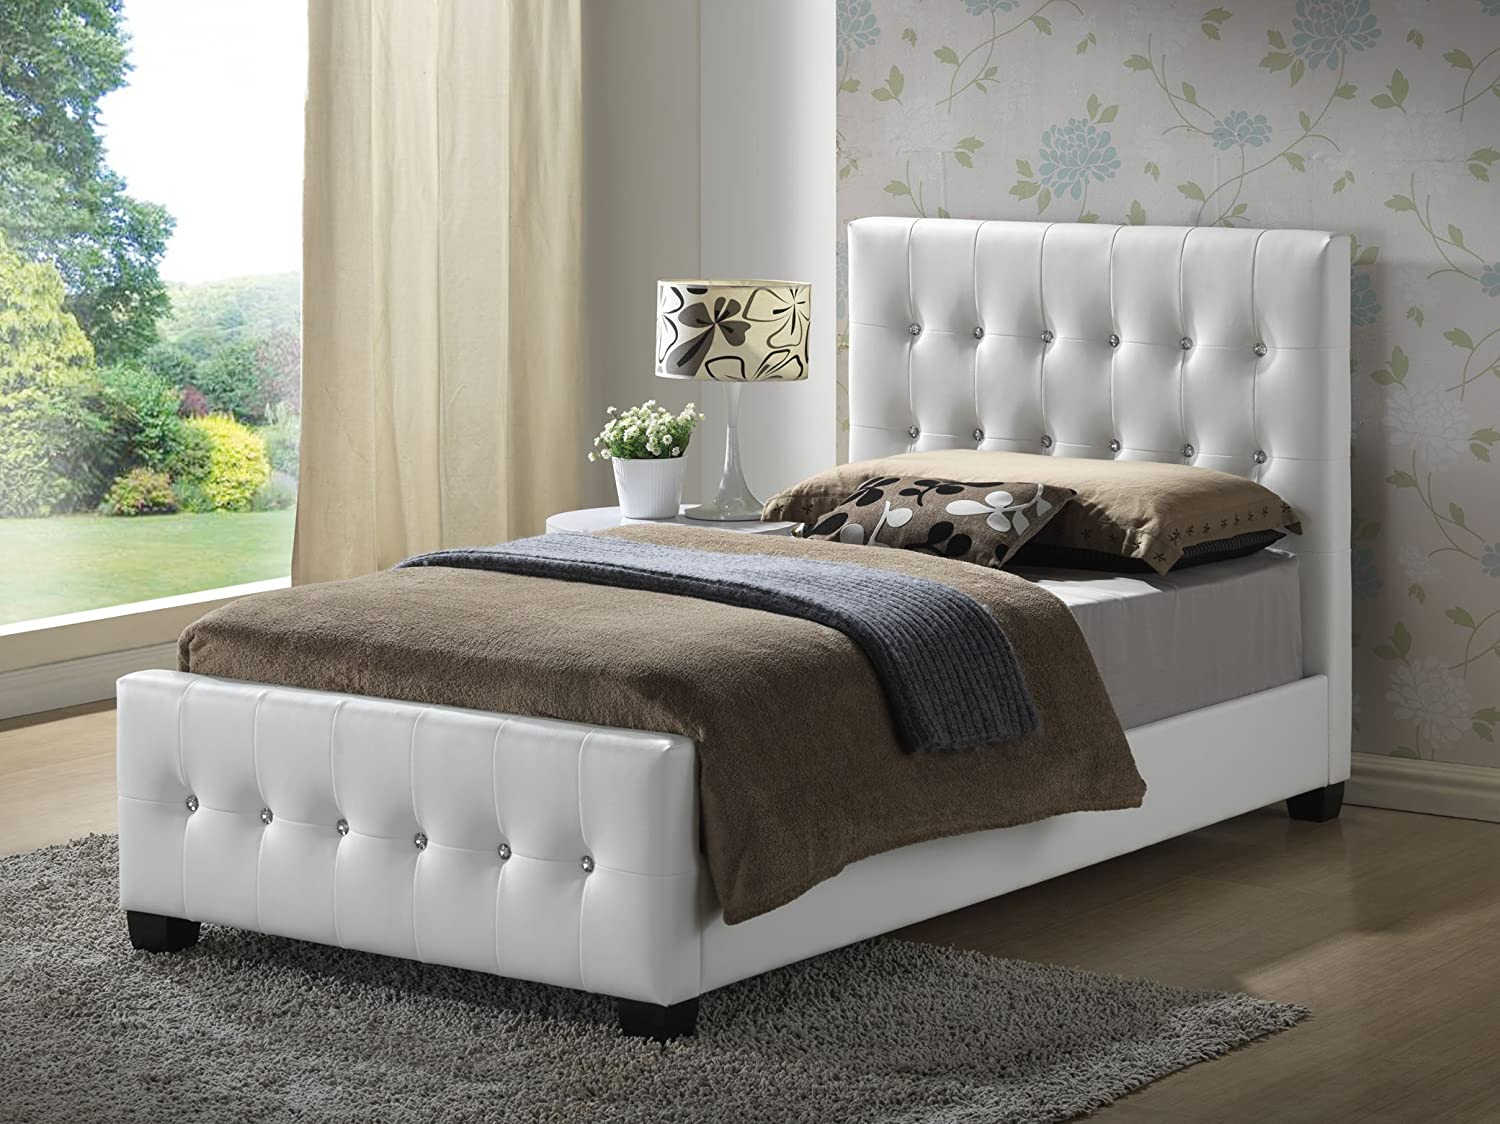 Amazon Com White Twin Size Modern Headboard Tufted Design Leather Look Upholstered Bed Kitchen Dining